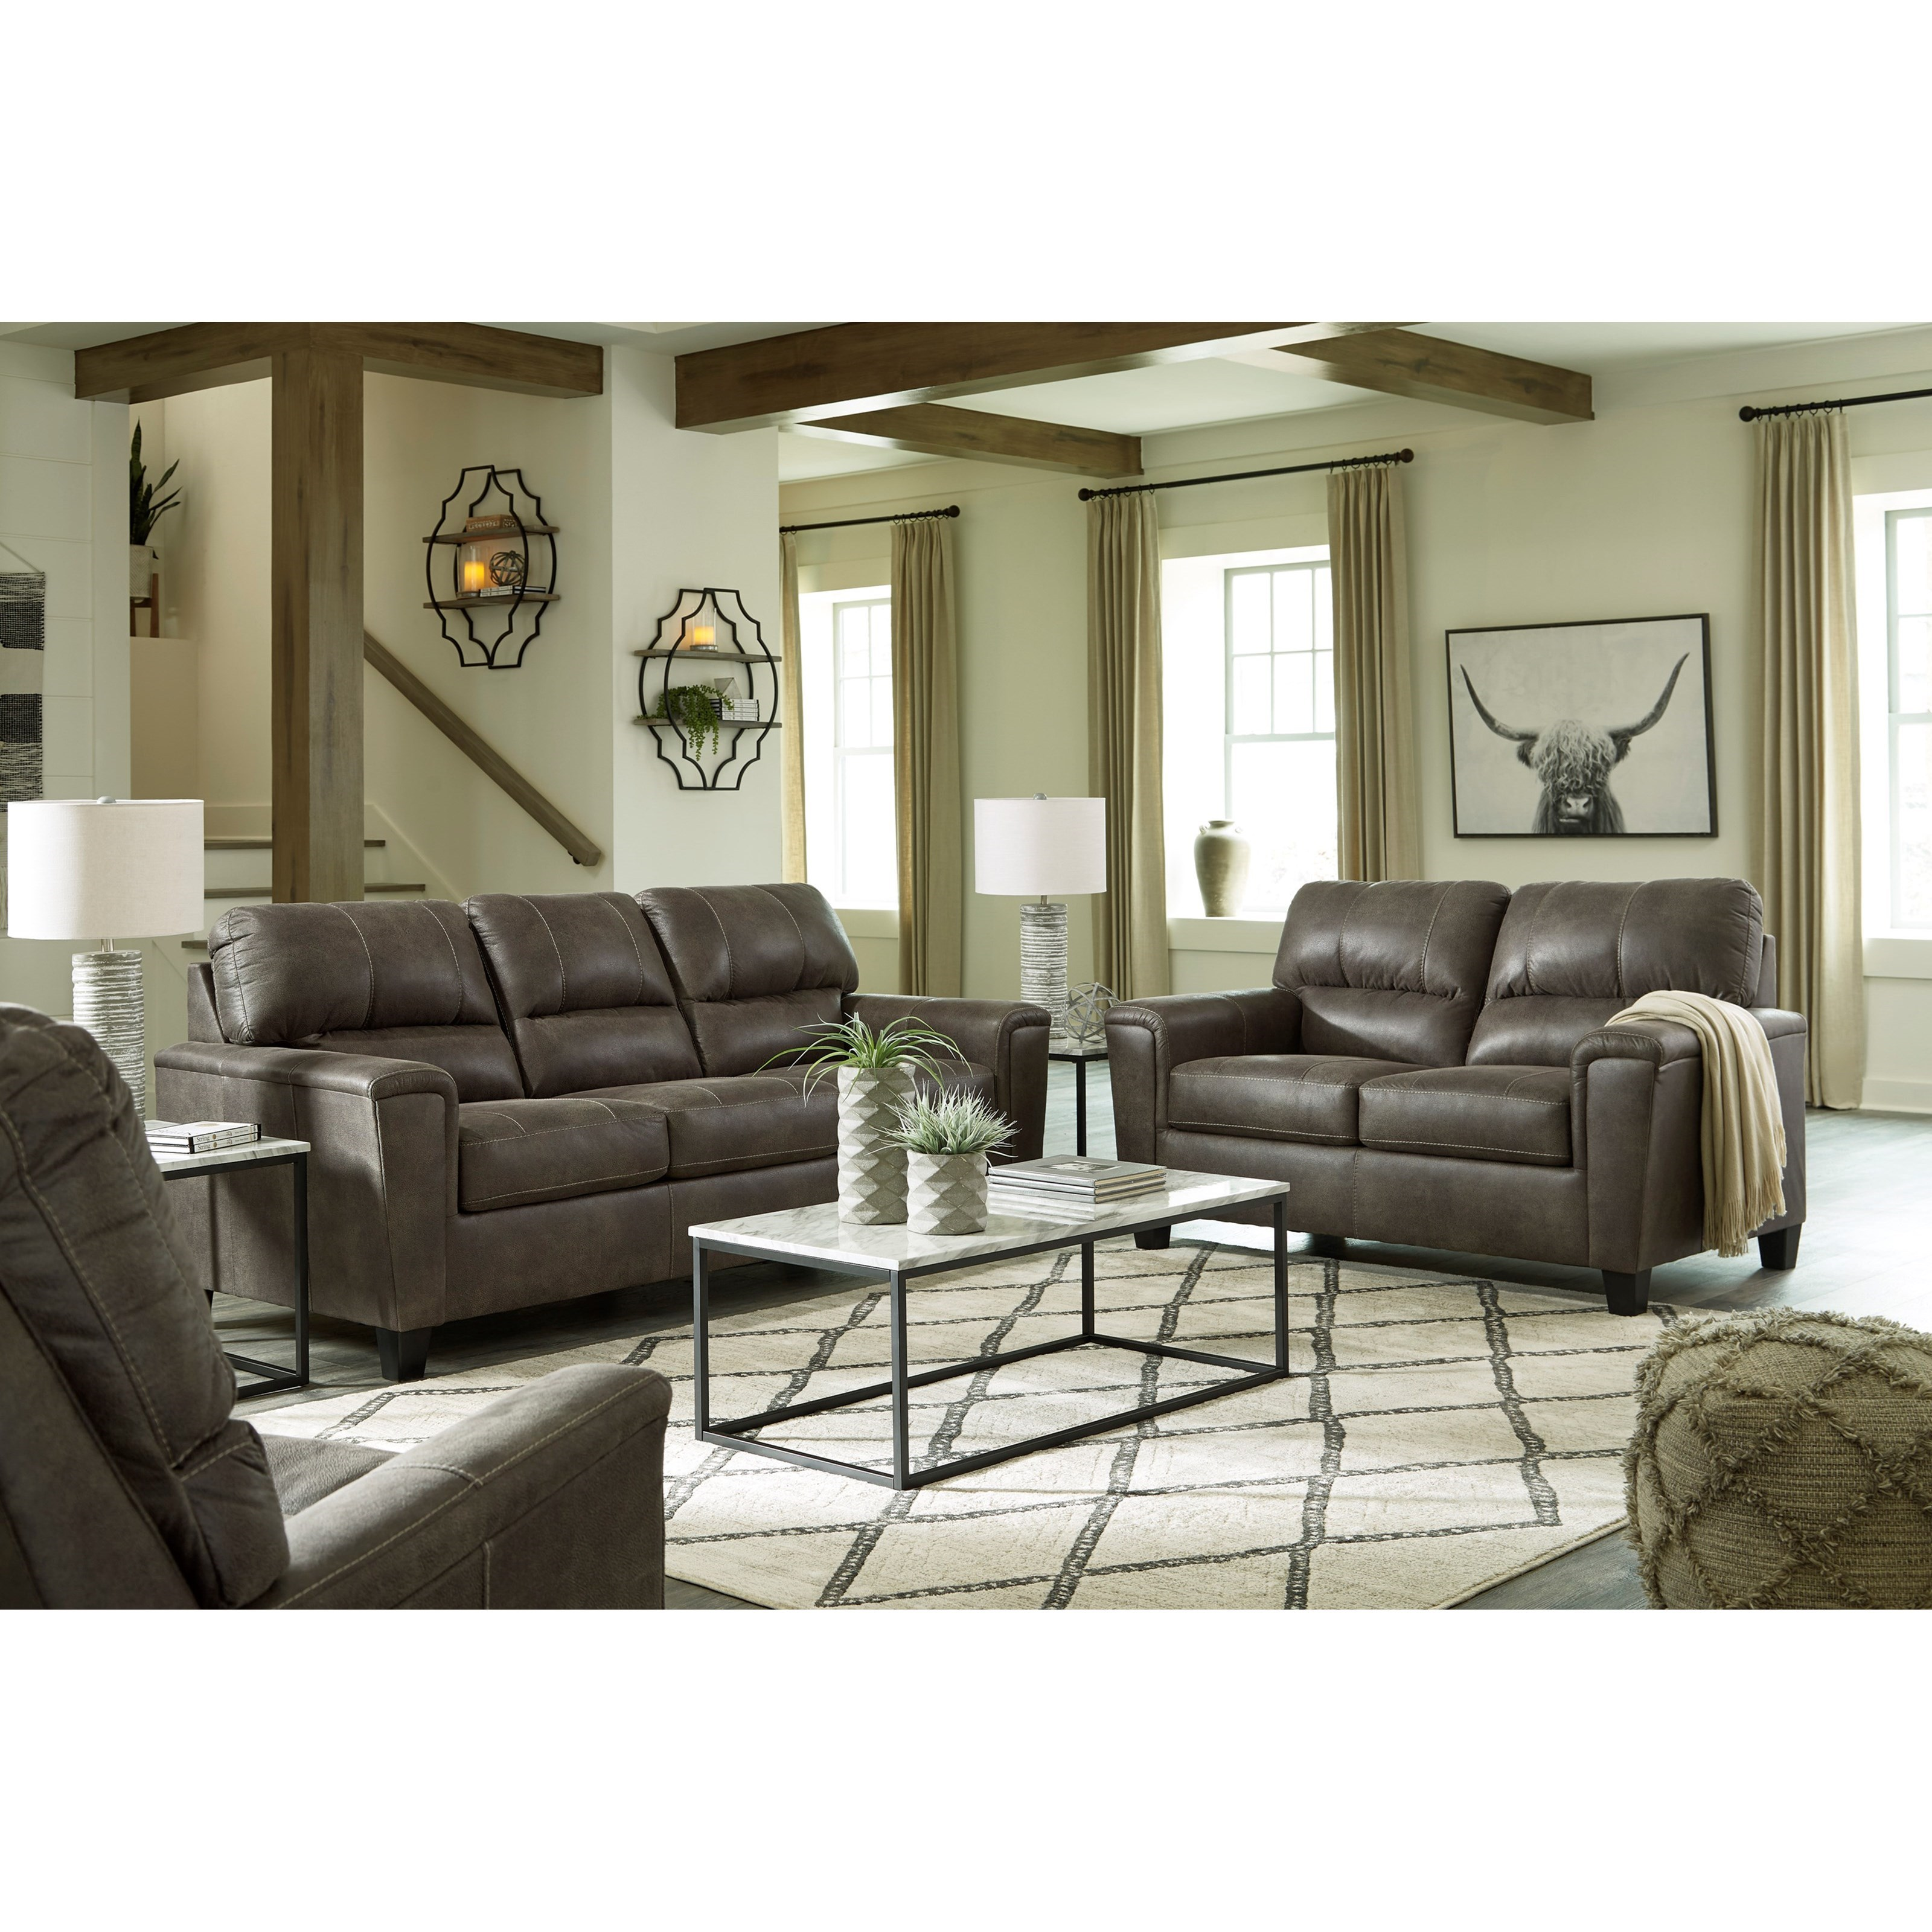 Navi Living Room Group by Signature Design by Ashley at Smart Buy Furniture